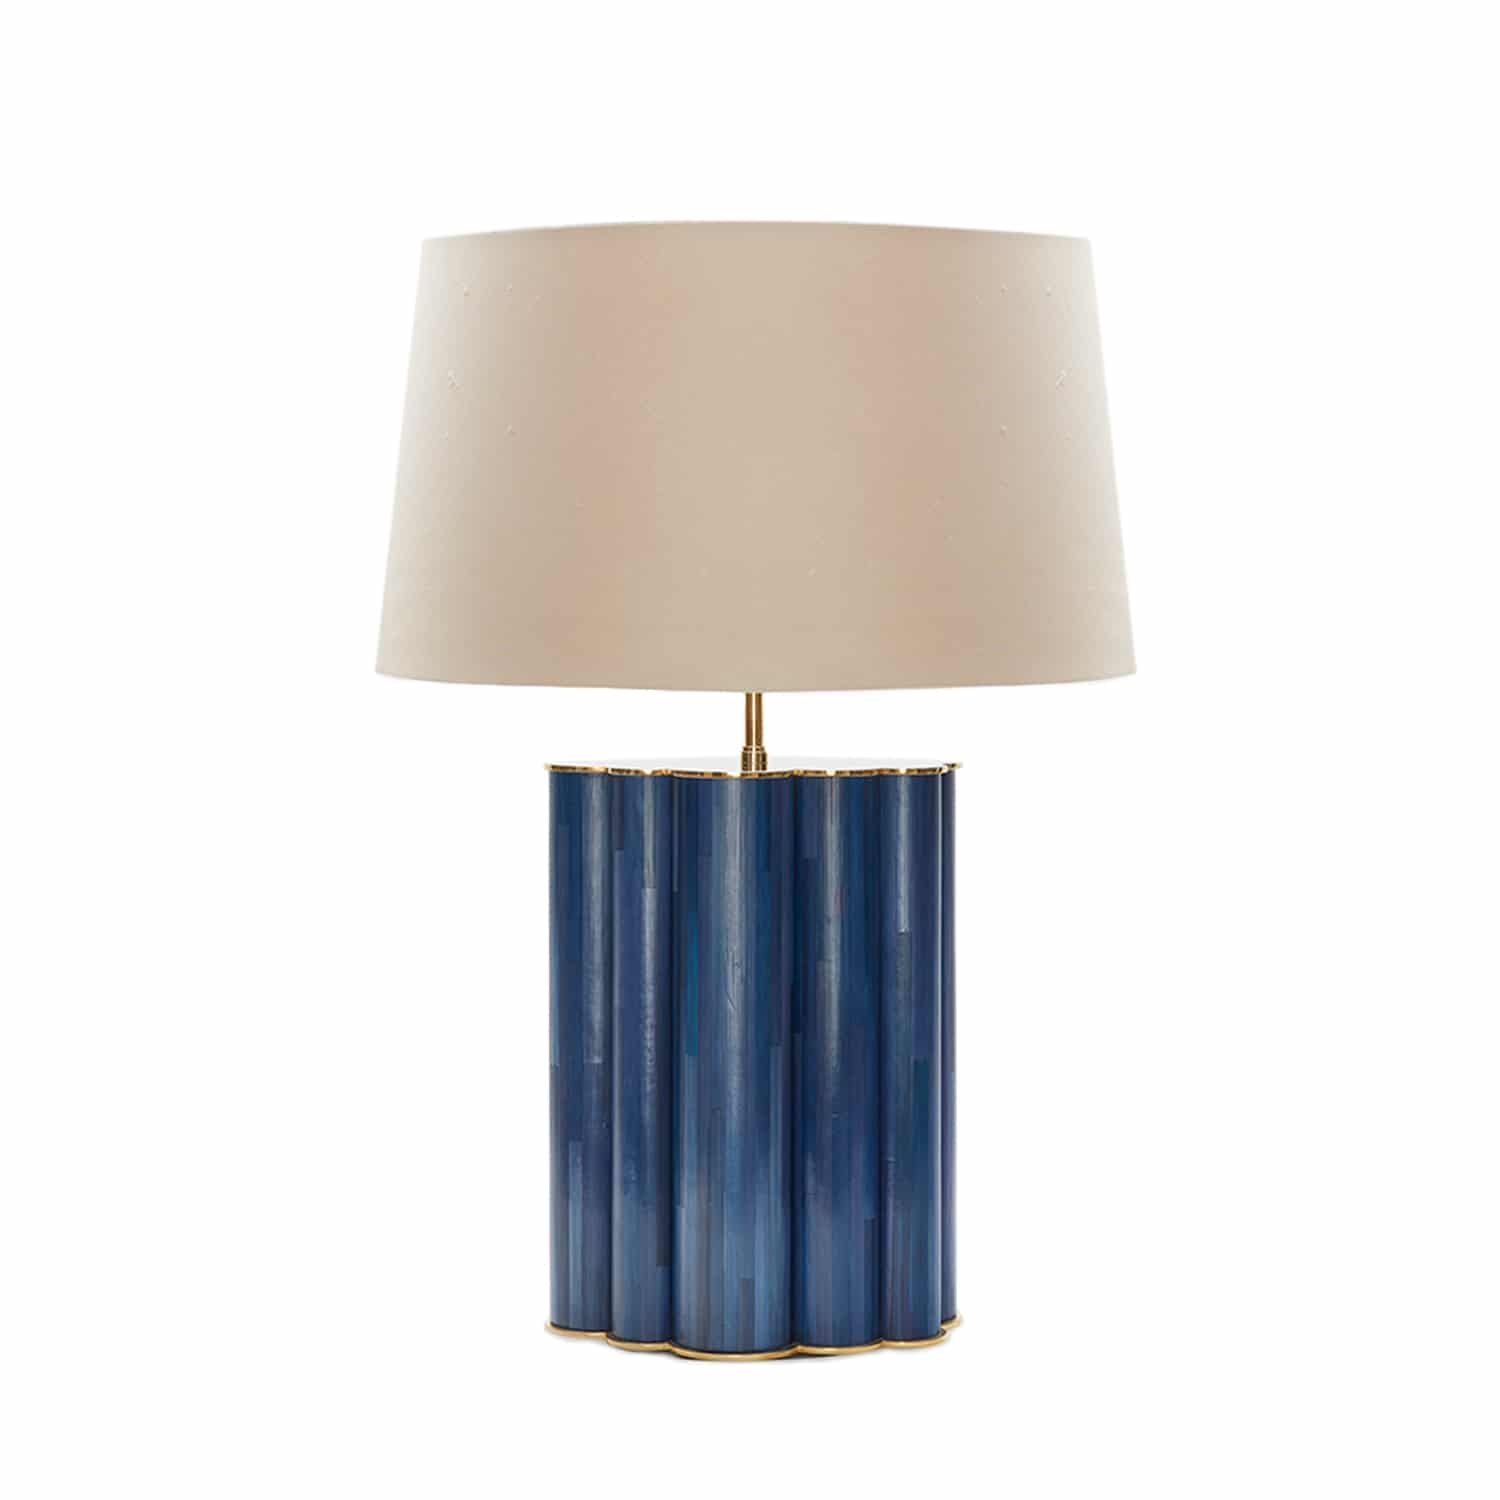 luxury lamp for home